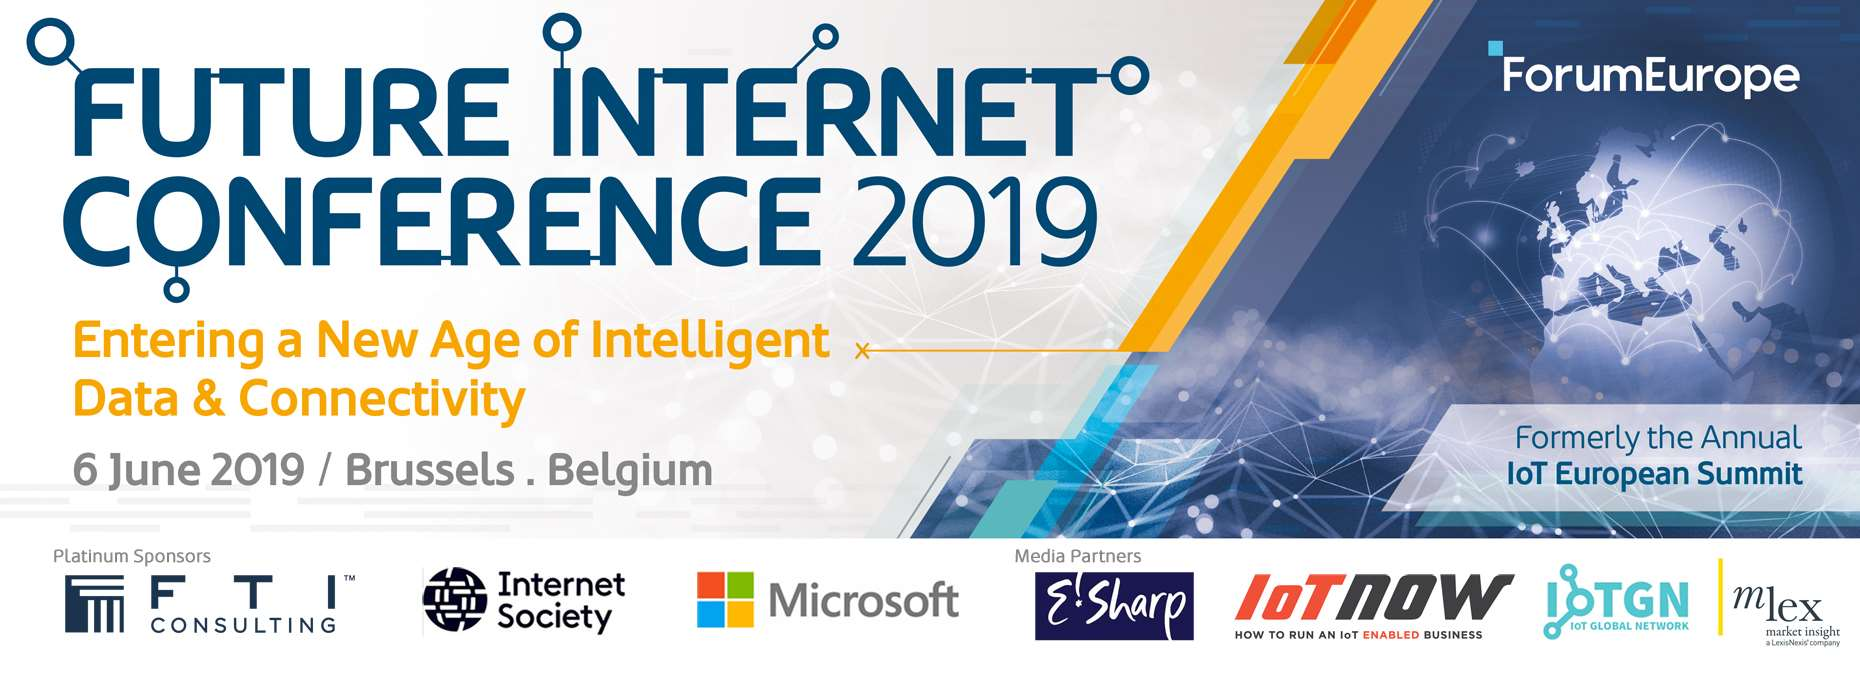 Future of Internet Conference 2019